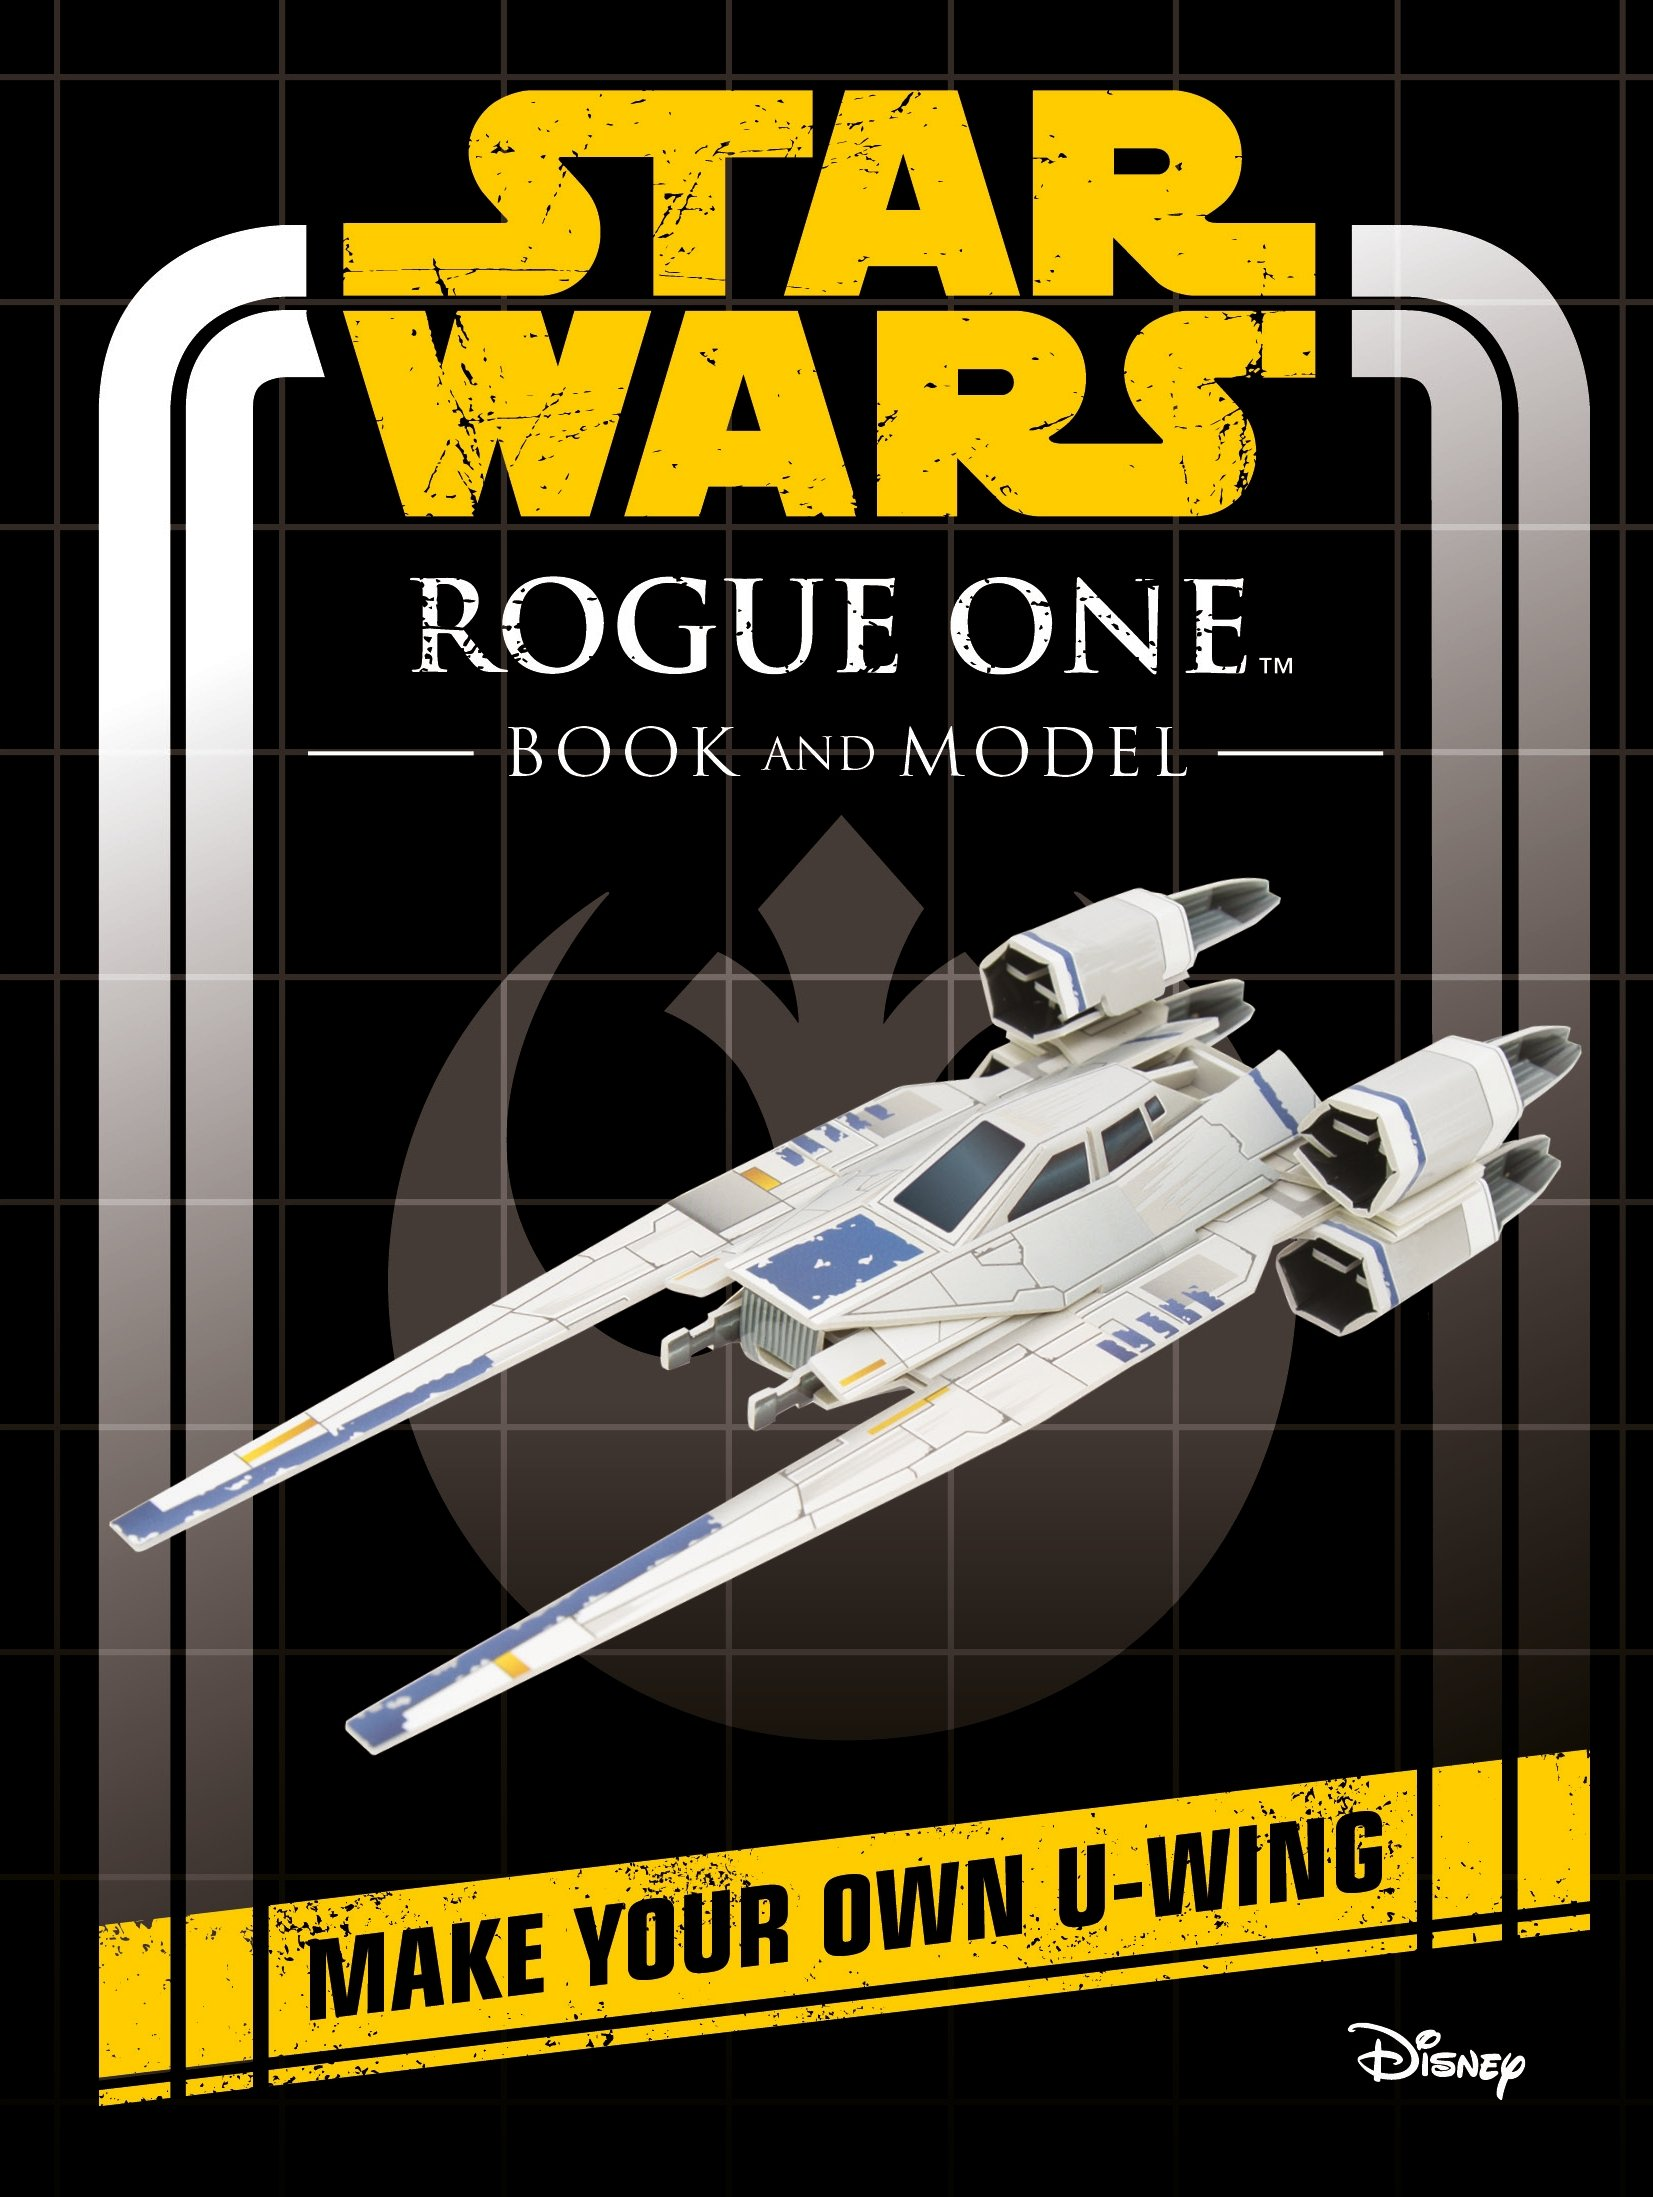 Star Wars Rogue One Book And Model: Make Your Own Uwing (star